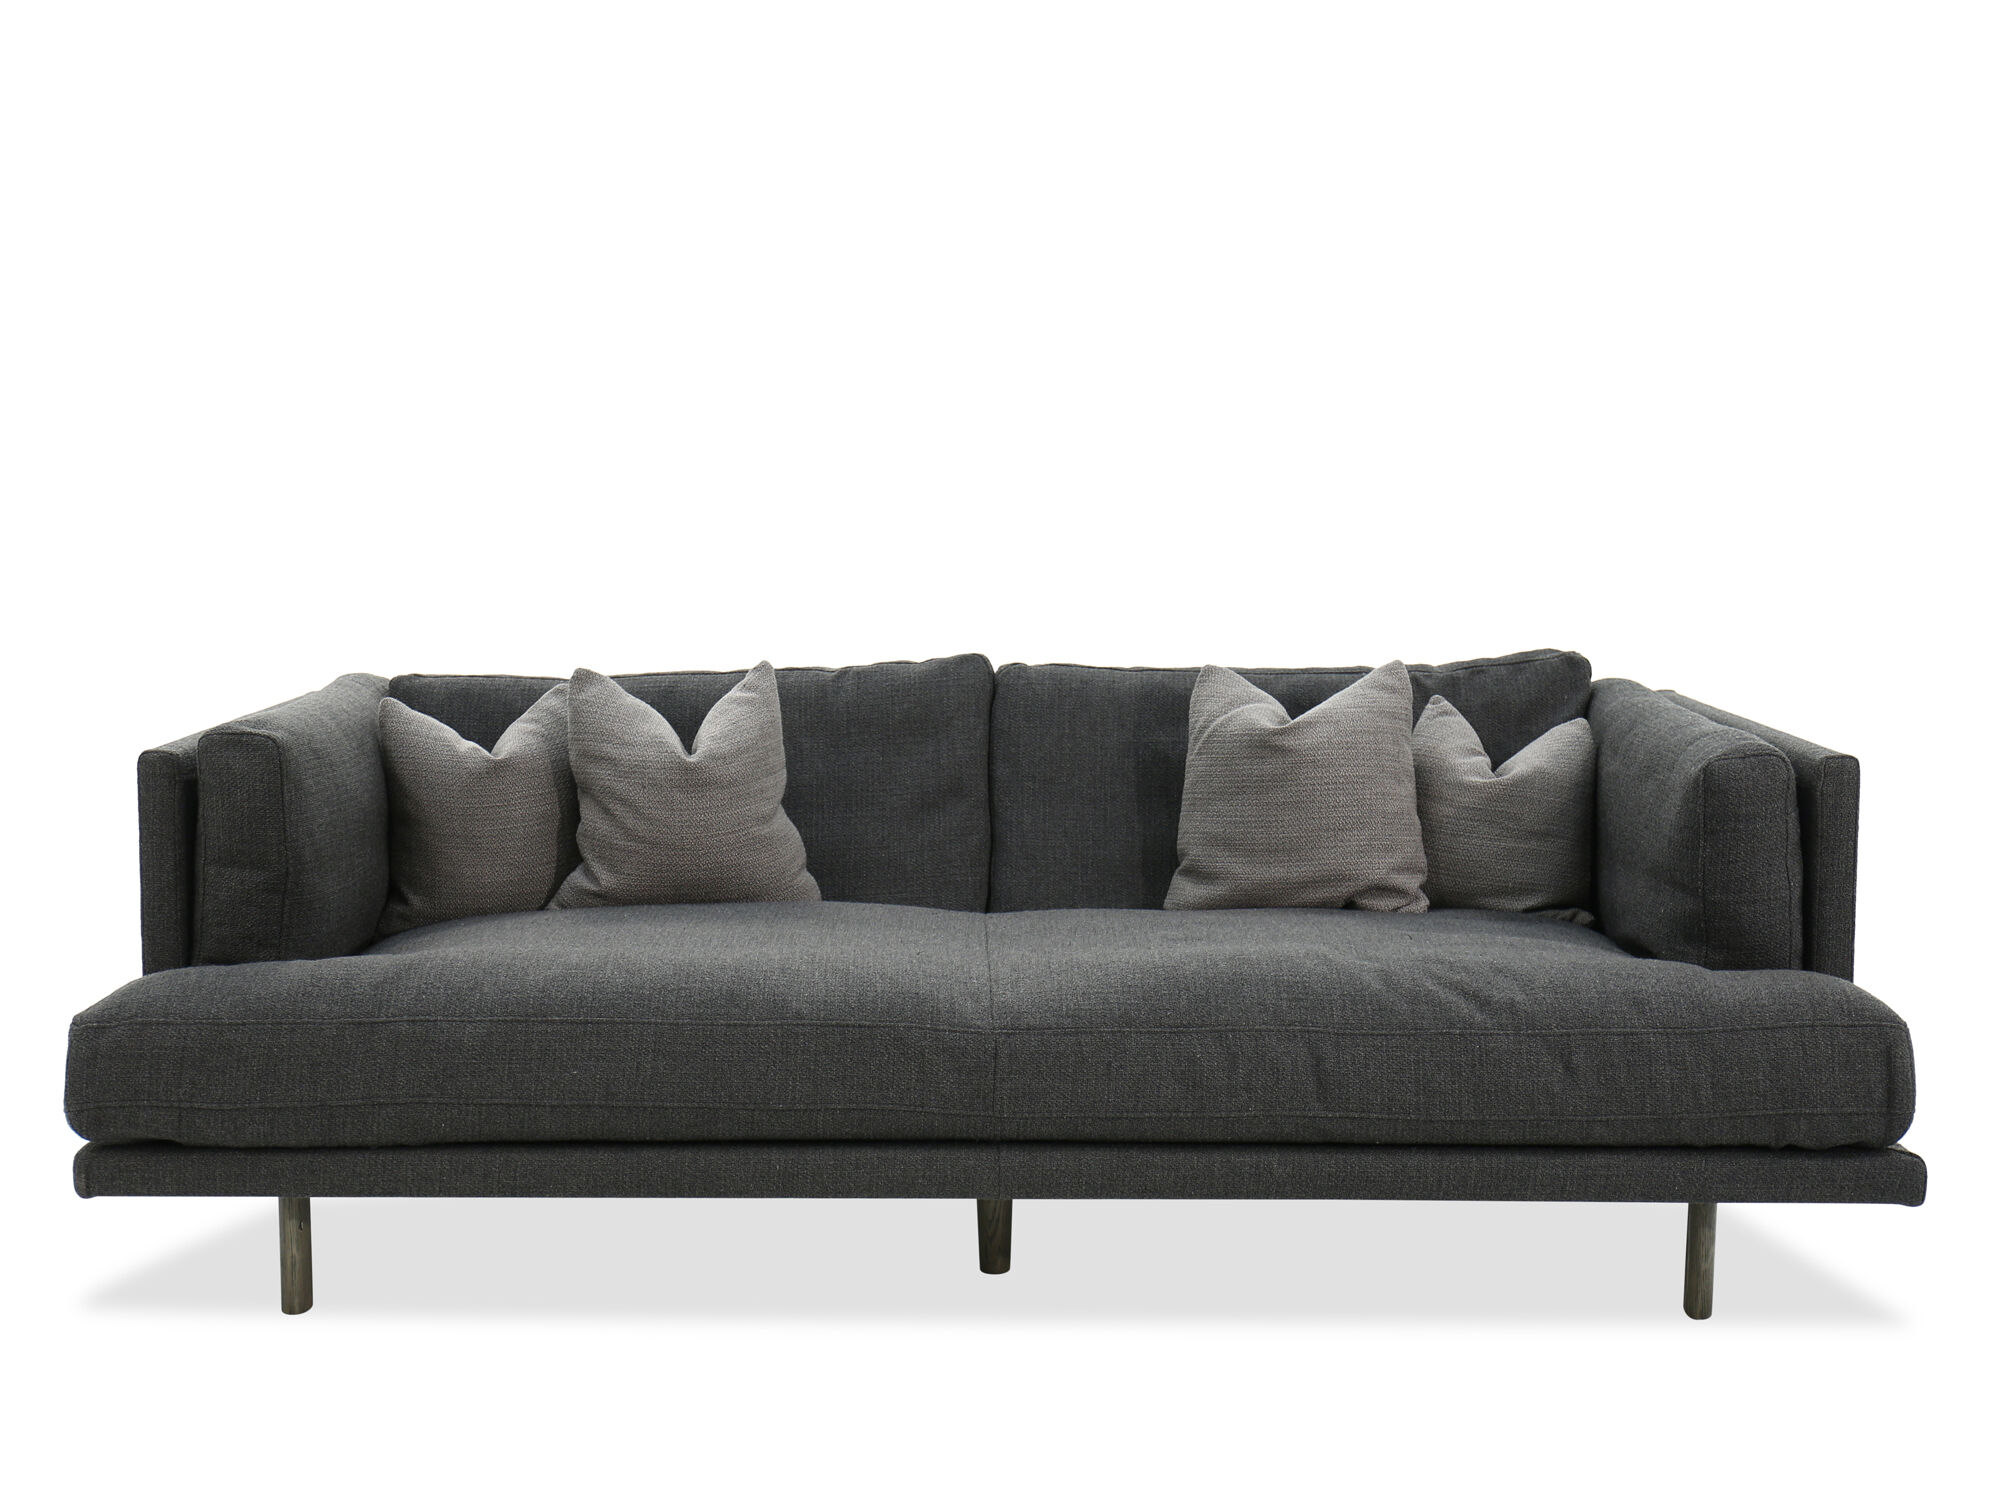 Images Modern Low Profile 98u0026quot; Shelter Sofa In Gray Modern Low Profile  98u0026quot; Shelter Sofa In Gray